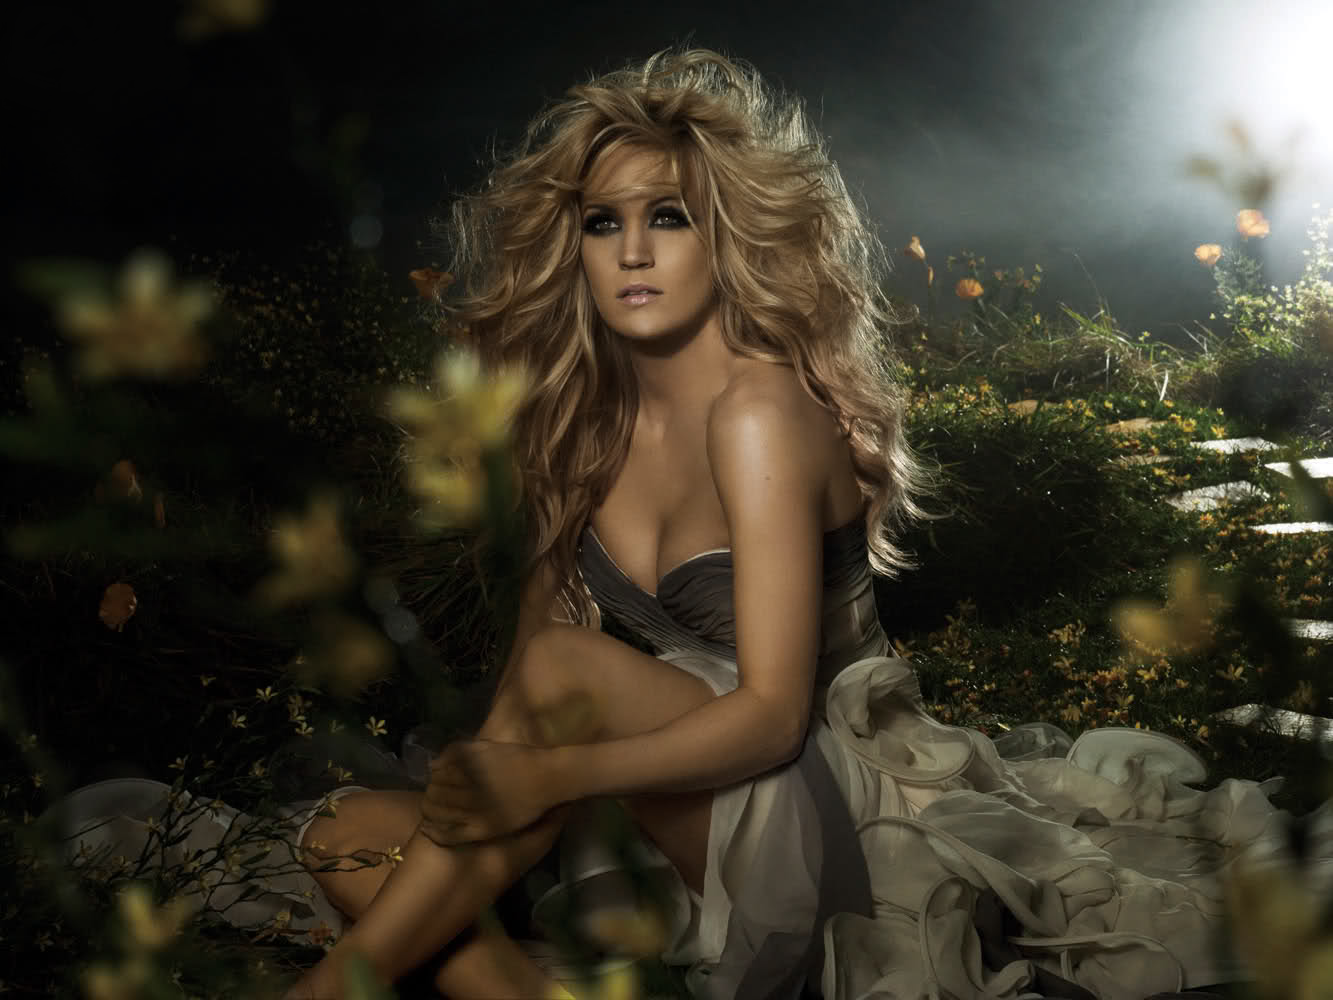 Blown Away (Promo), Carrie Underwood